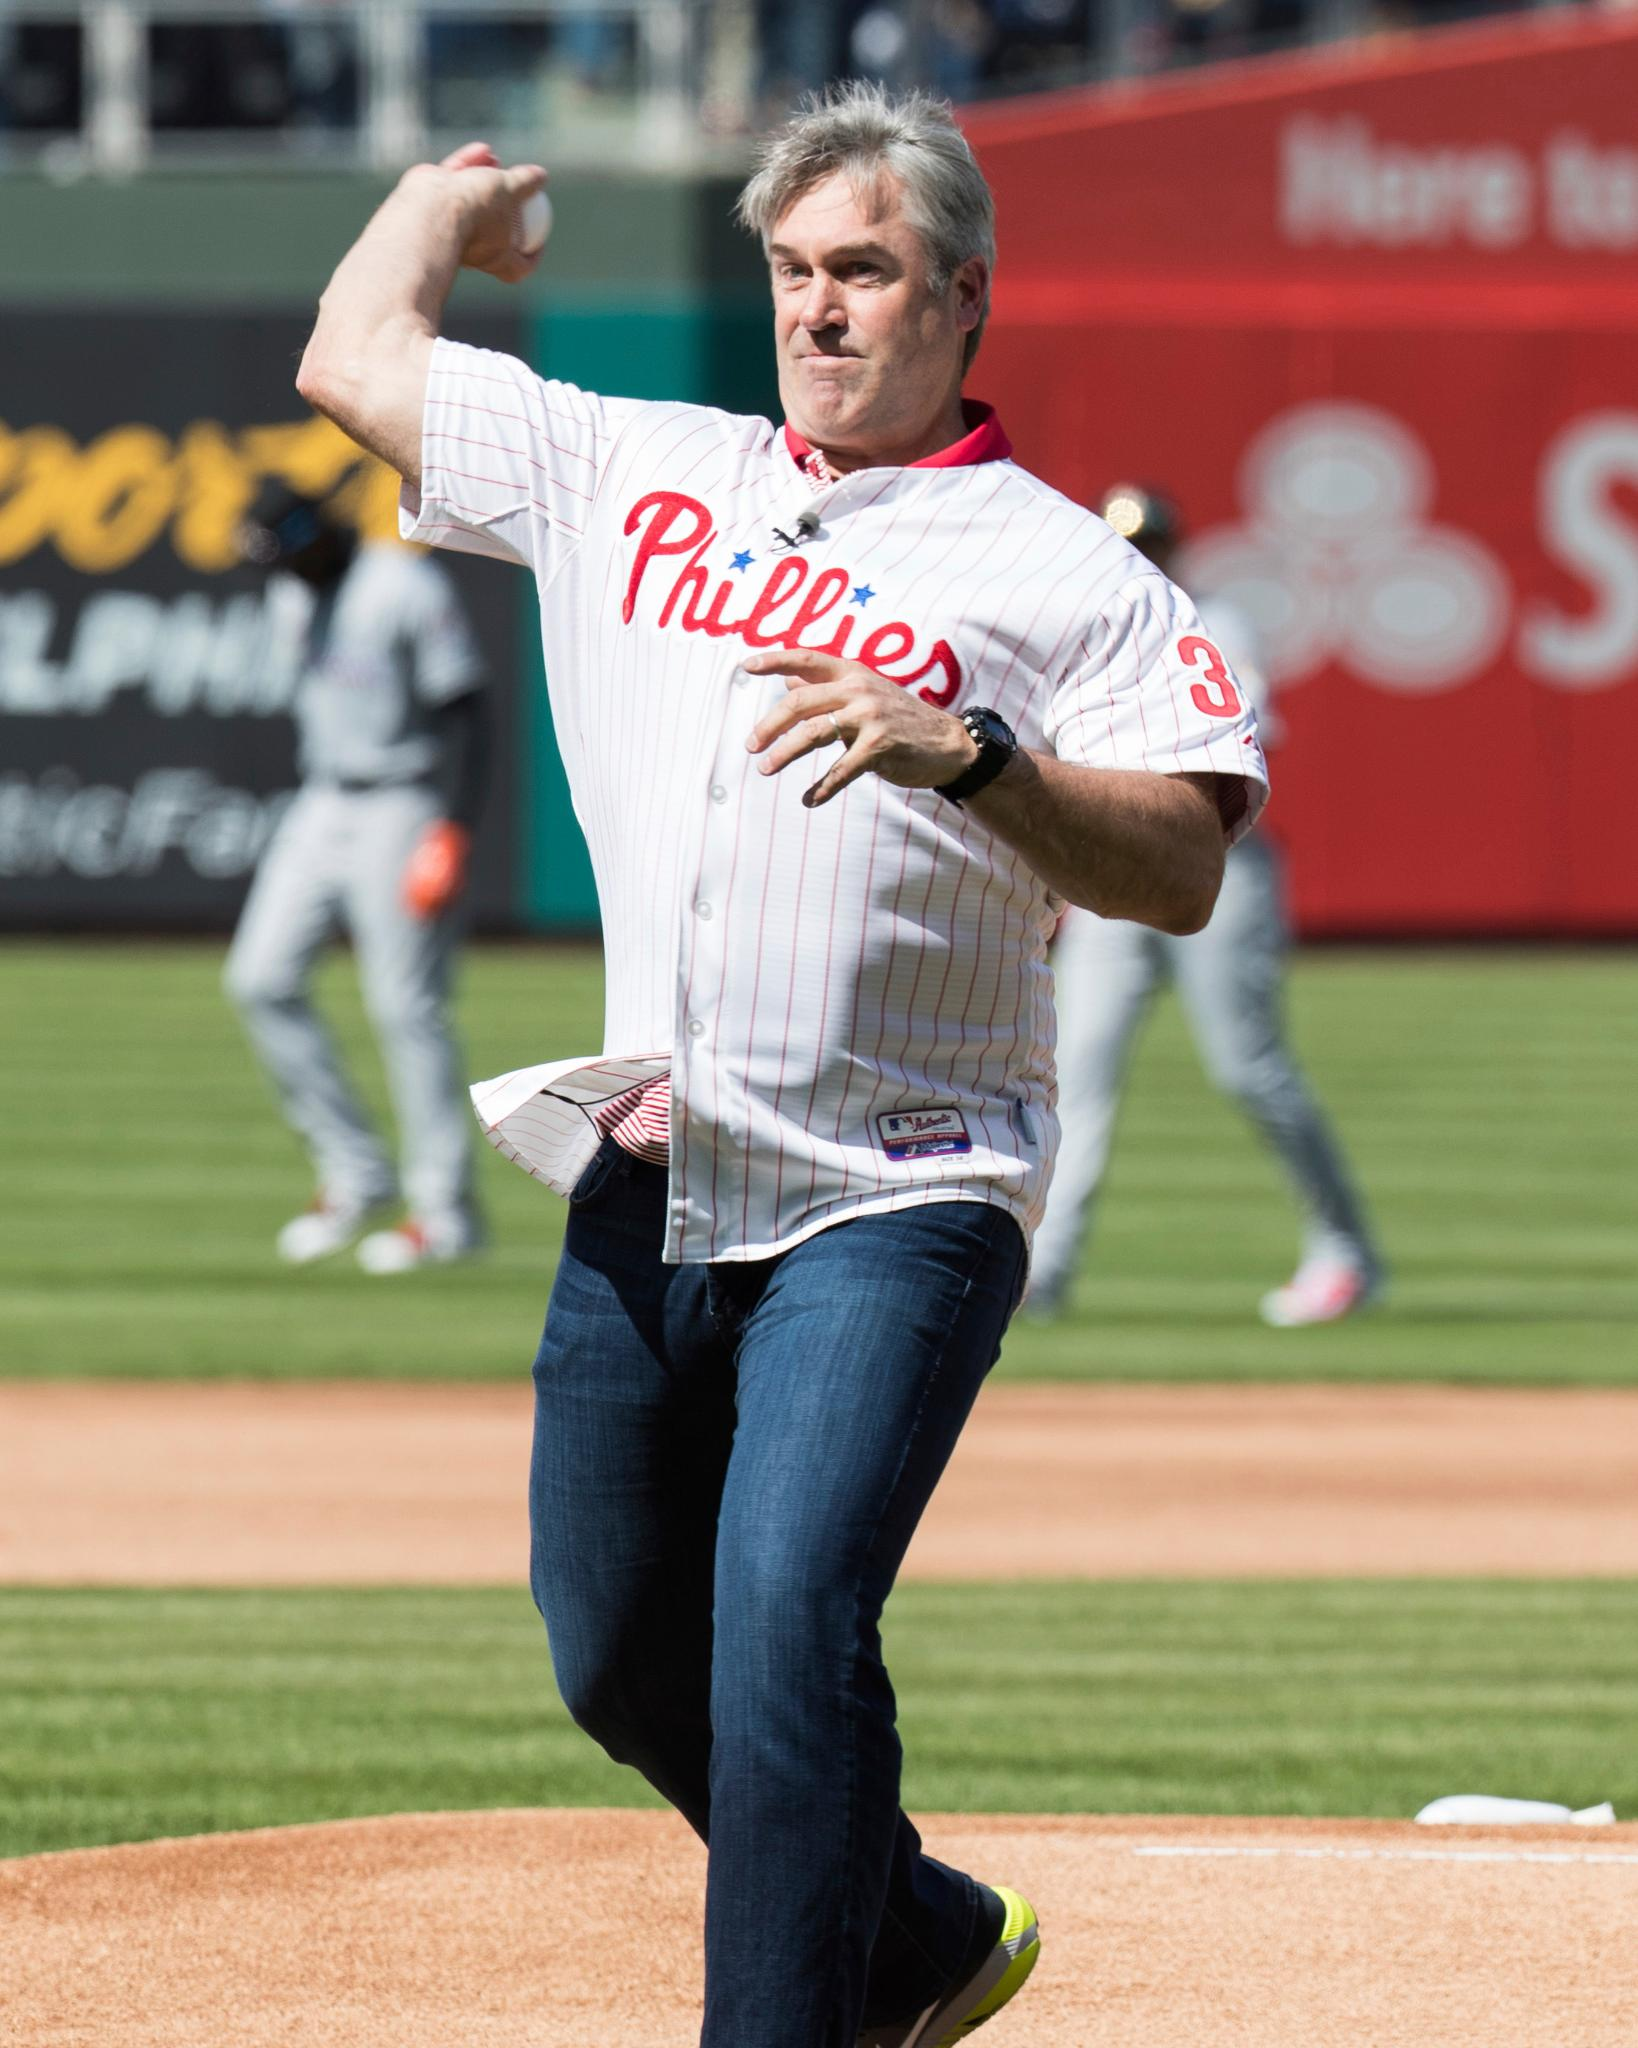 .@Eagles HC Doug Pederson threw out the first pitch at today's @Phillies game! ⚾️ #FlyEaglesFly https://t.co/6U2JuoaR3u